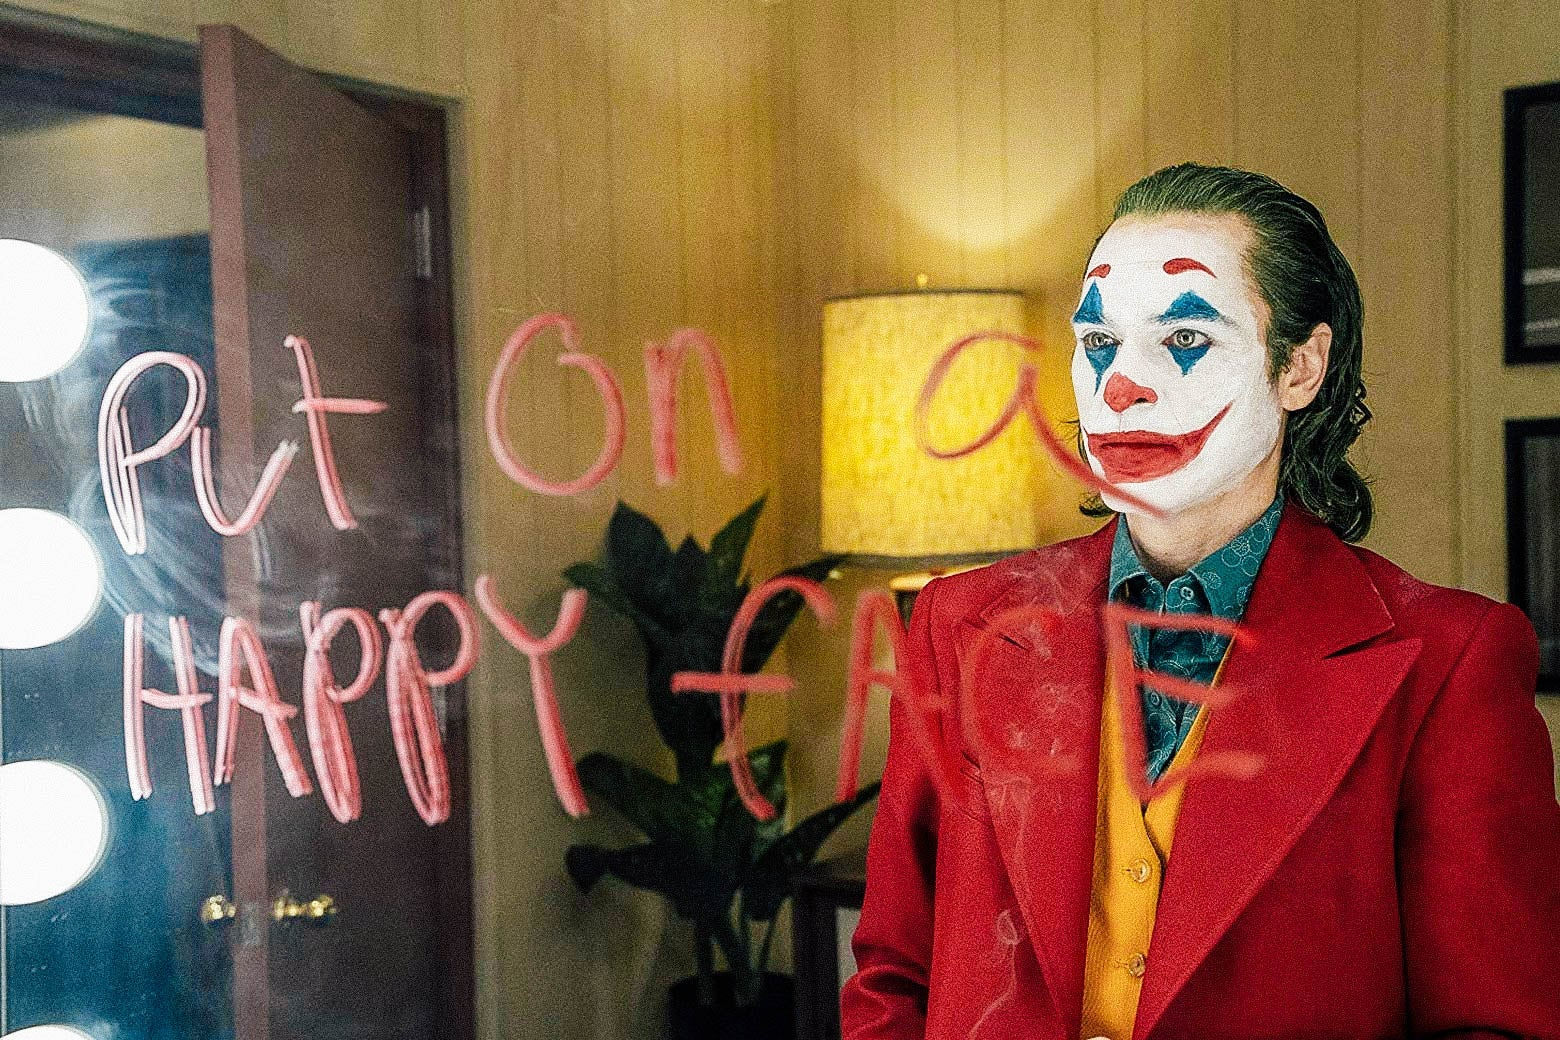 joker movie review don t skip it over fears of violence skip it